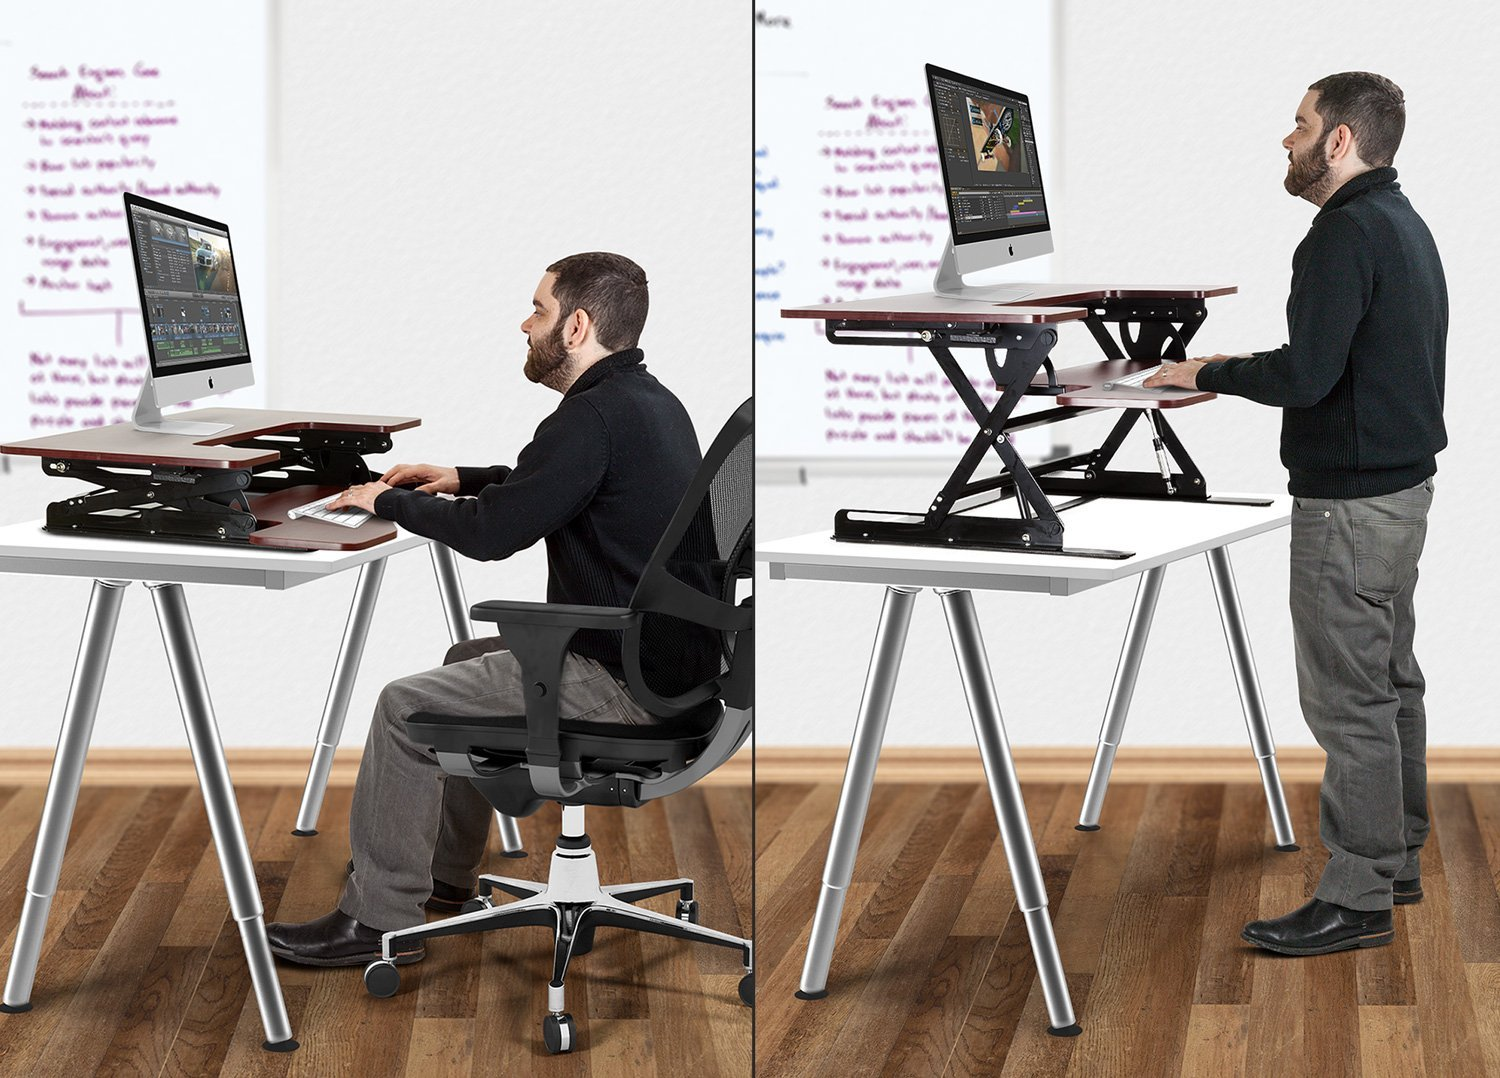 Sit To Stand Desk Halter Ed 259 Preassembled Height Adjustable Desk Sit Stand Elevating Desktop With 2 Power Outlets And 2 Usb Charging Ports